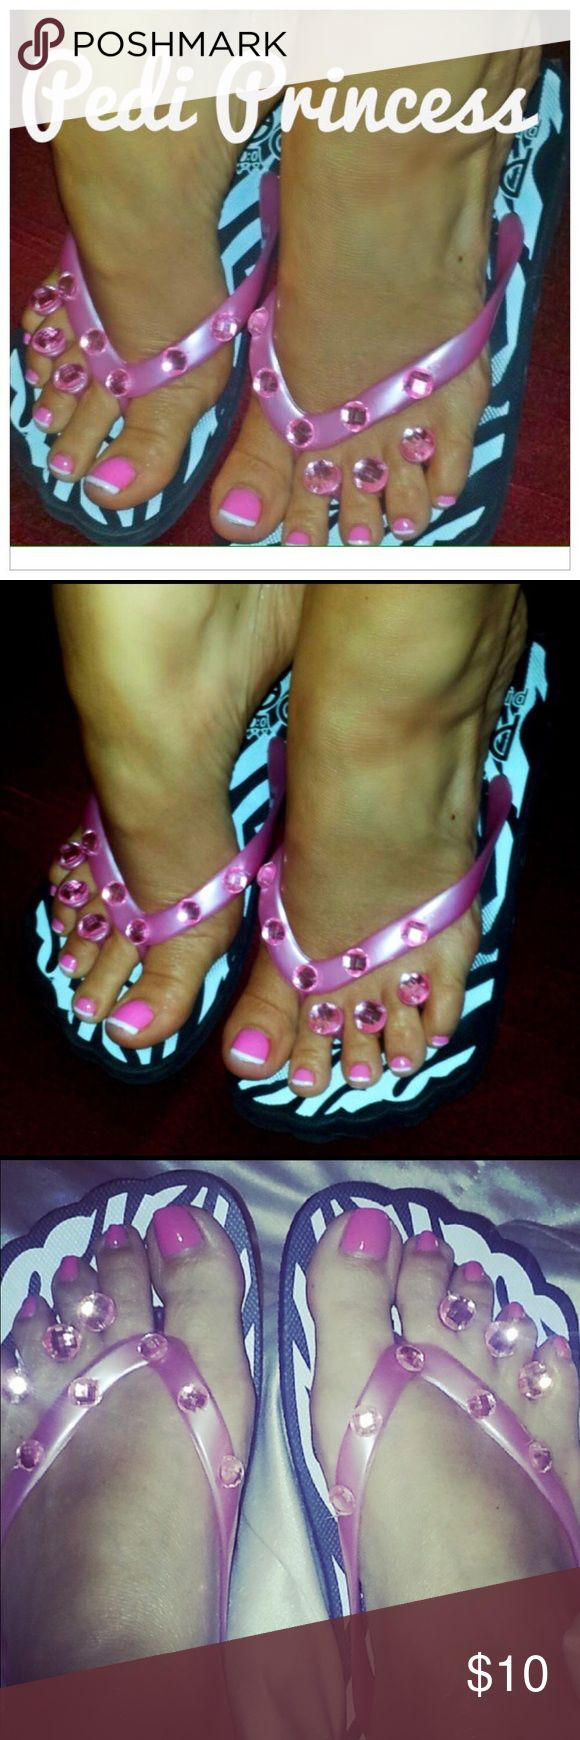 Zebra Print Pedicure Flip Flop Sandals No more paper between your toes and flimsy flip flops! The Pedi Princess is the perfect pedicure flip flop with it's stoned toe separators attached. Cute and comfy. Just polish and go!   Zebra Black & White w/ Pink Strap pedicure flip flops. All the pedicure flip flops are brand new, never worn and in their original packaging. Shoes Sandals